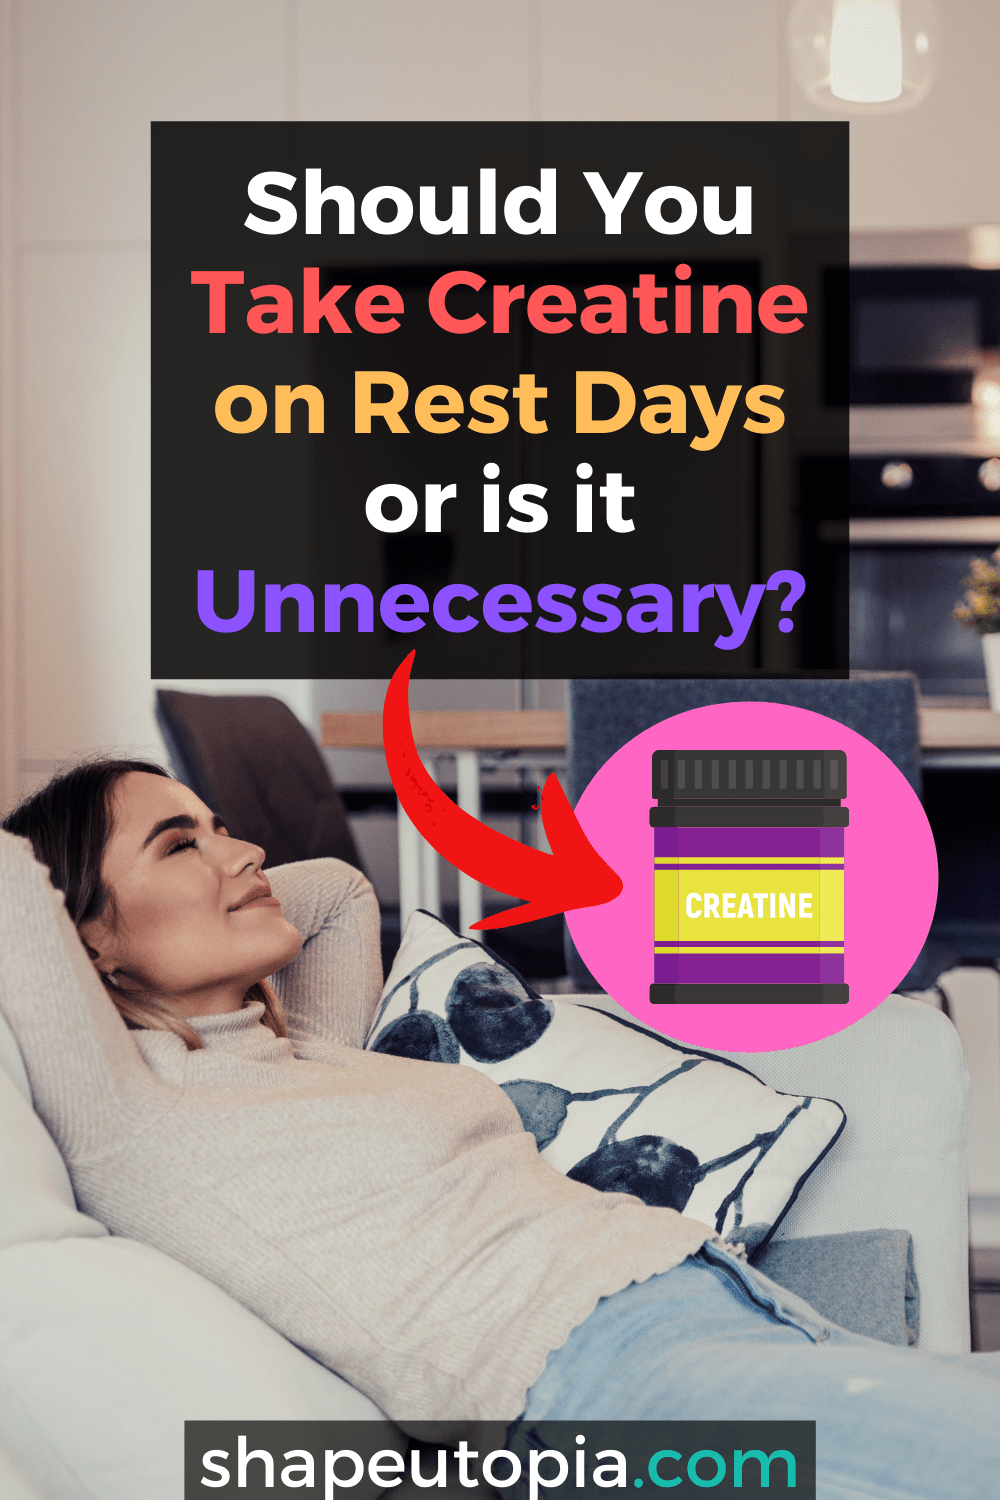 Should you Take Creatine on Rest Days or is it Unnecessary